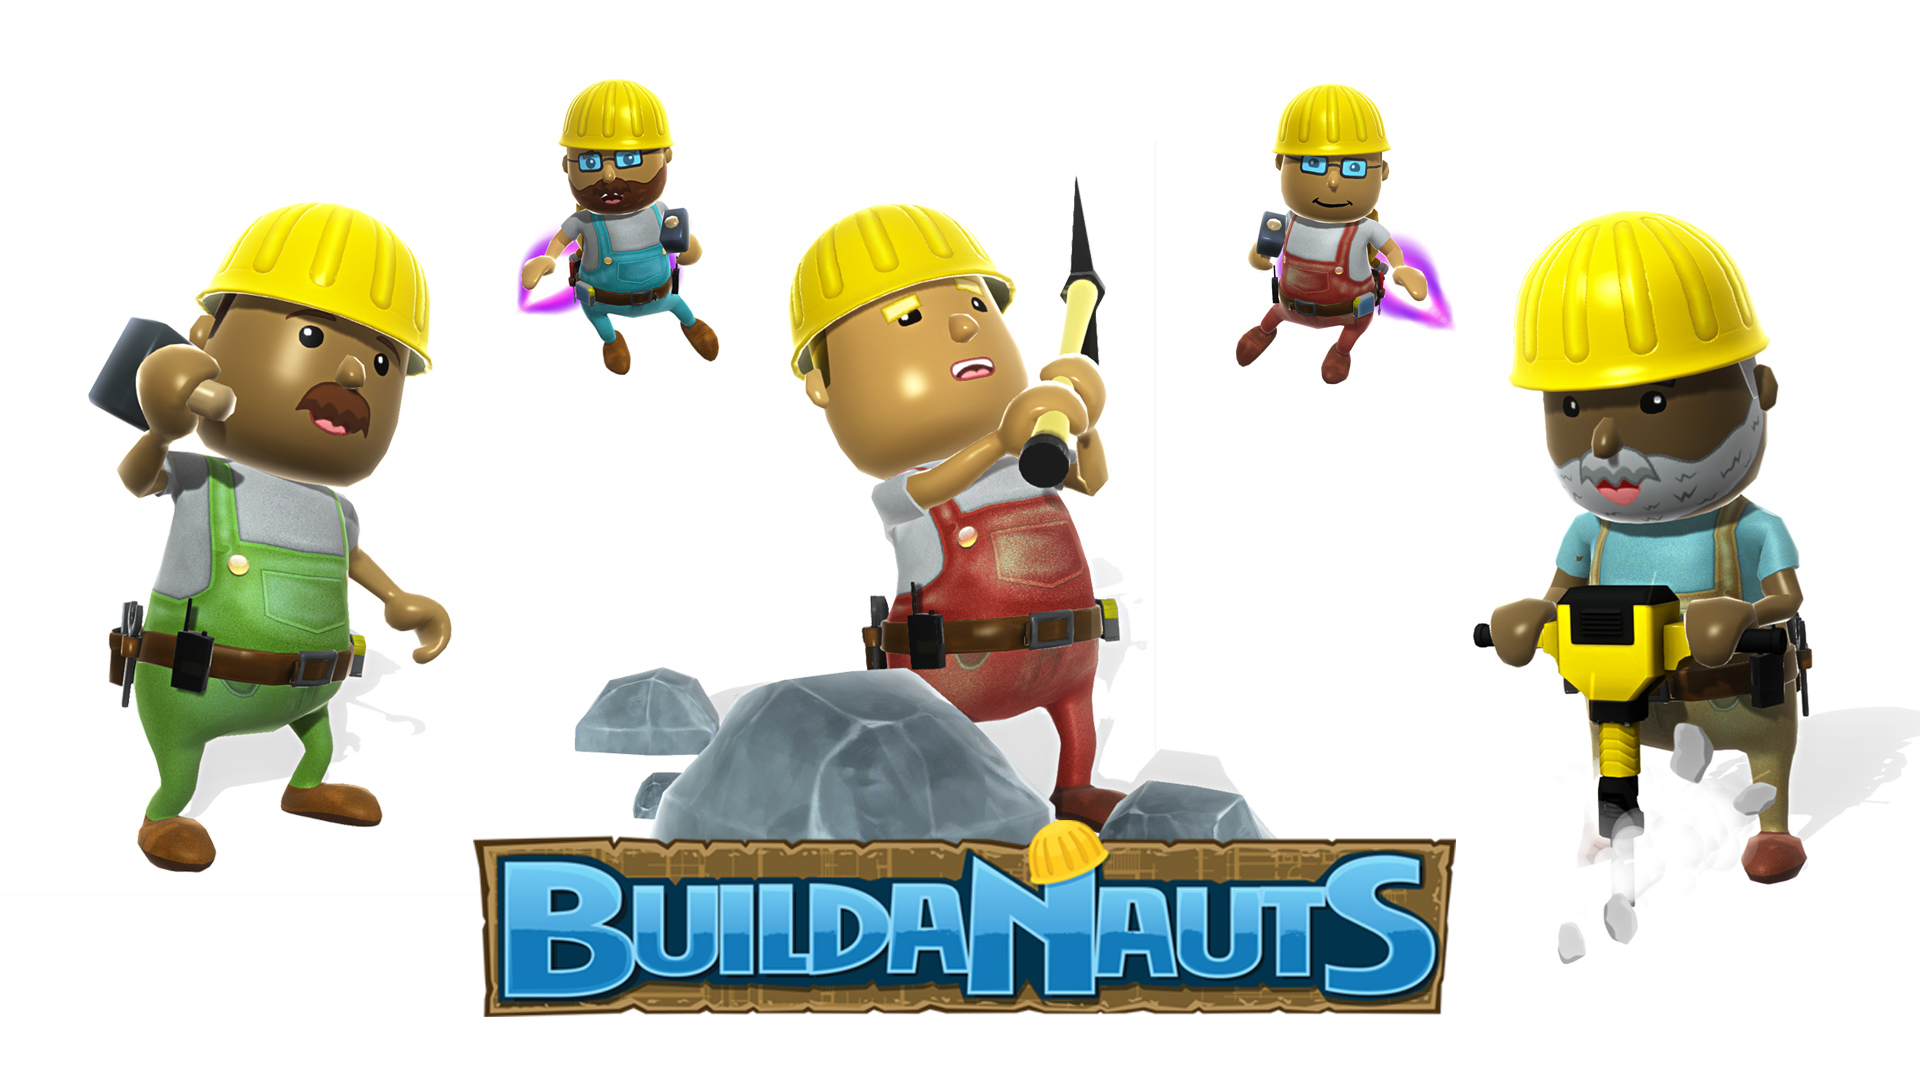 BuildanautsCharacters